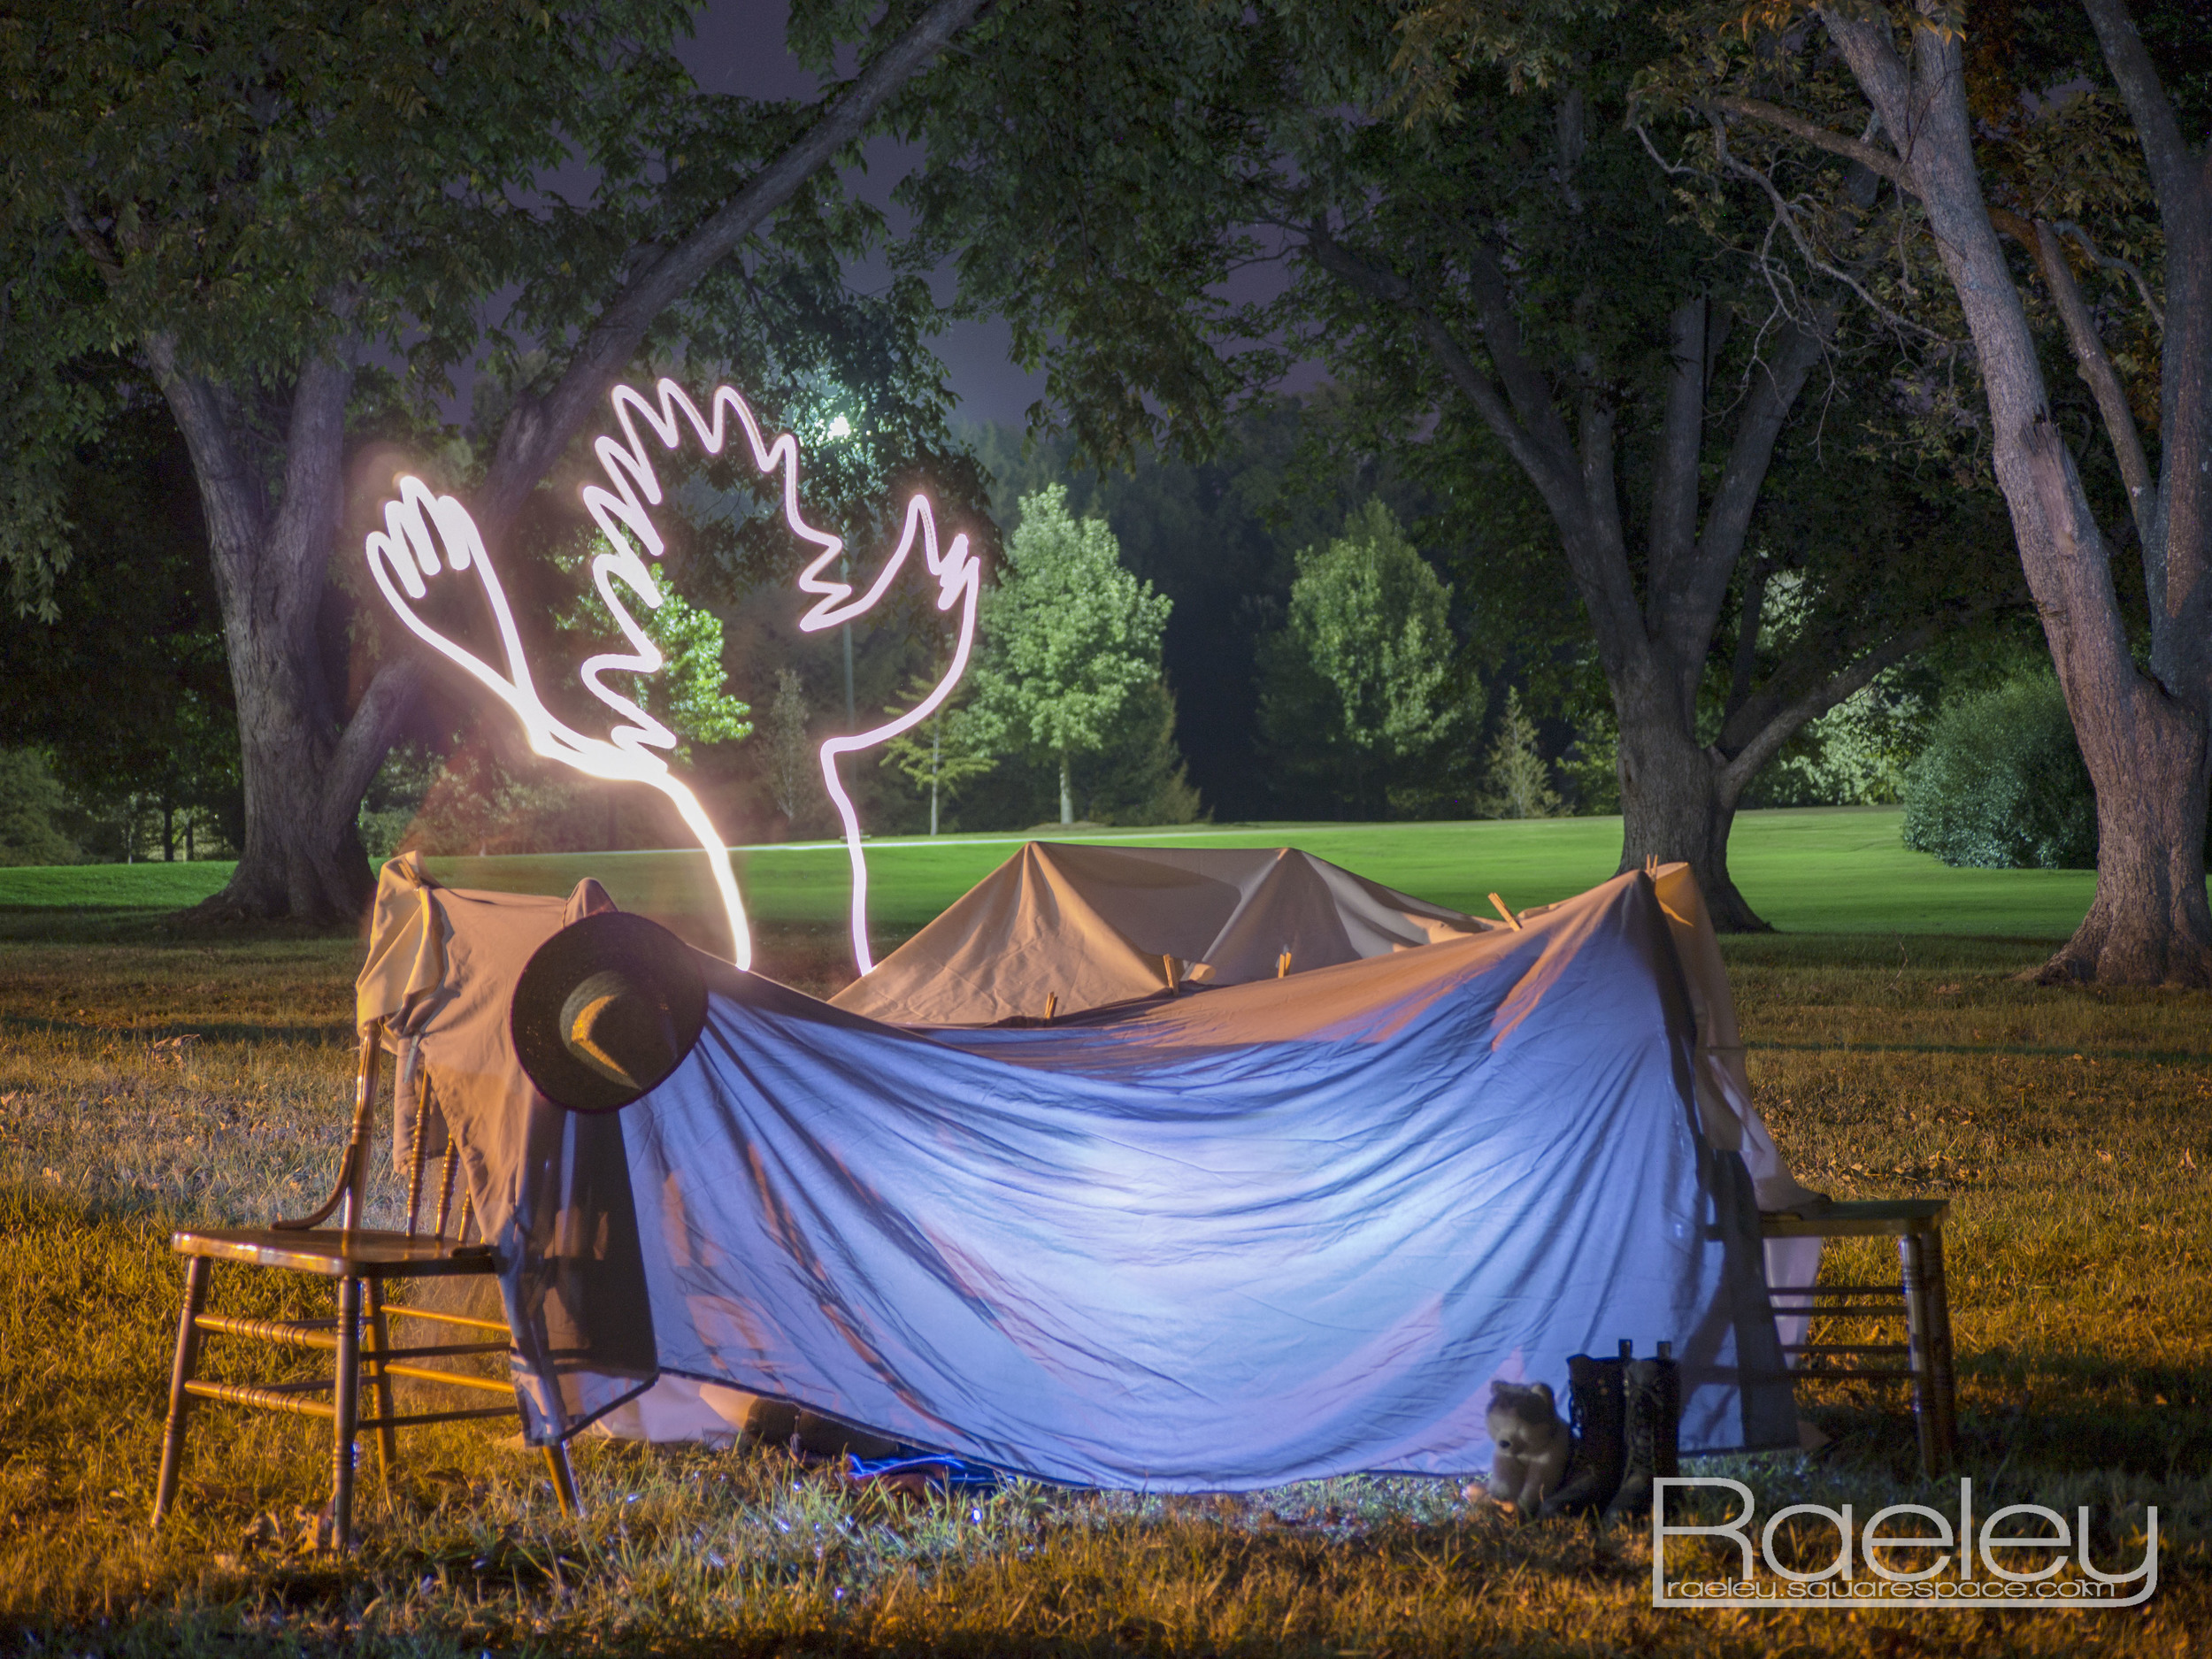 """""""Tent of Safety""""              The final product. Taken with a 30 second exposure at f 4.5 iso 160, edited in Photoshop."""